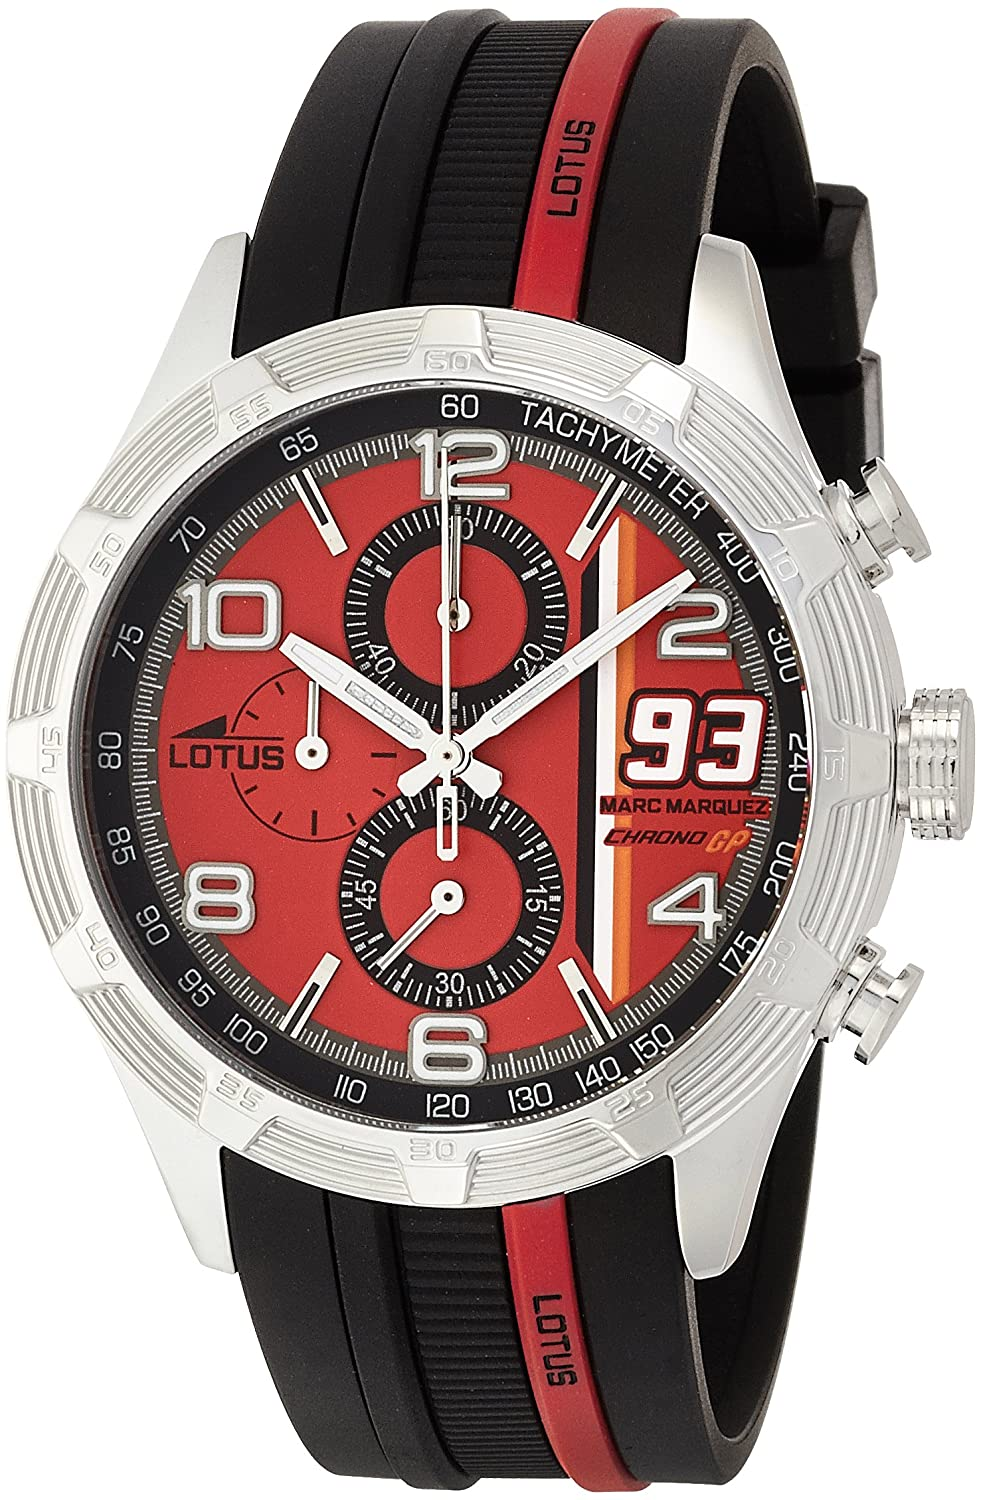 Amazon.com: Lotus 15881-5 Mens Marc Marquez Chrono GP Red Black Watch: LOTUS: Watches